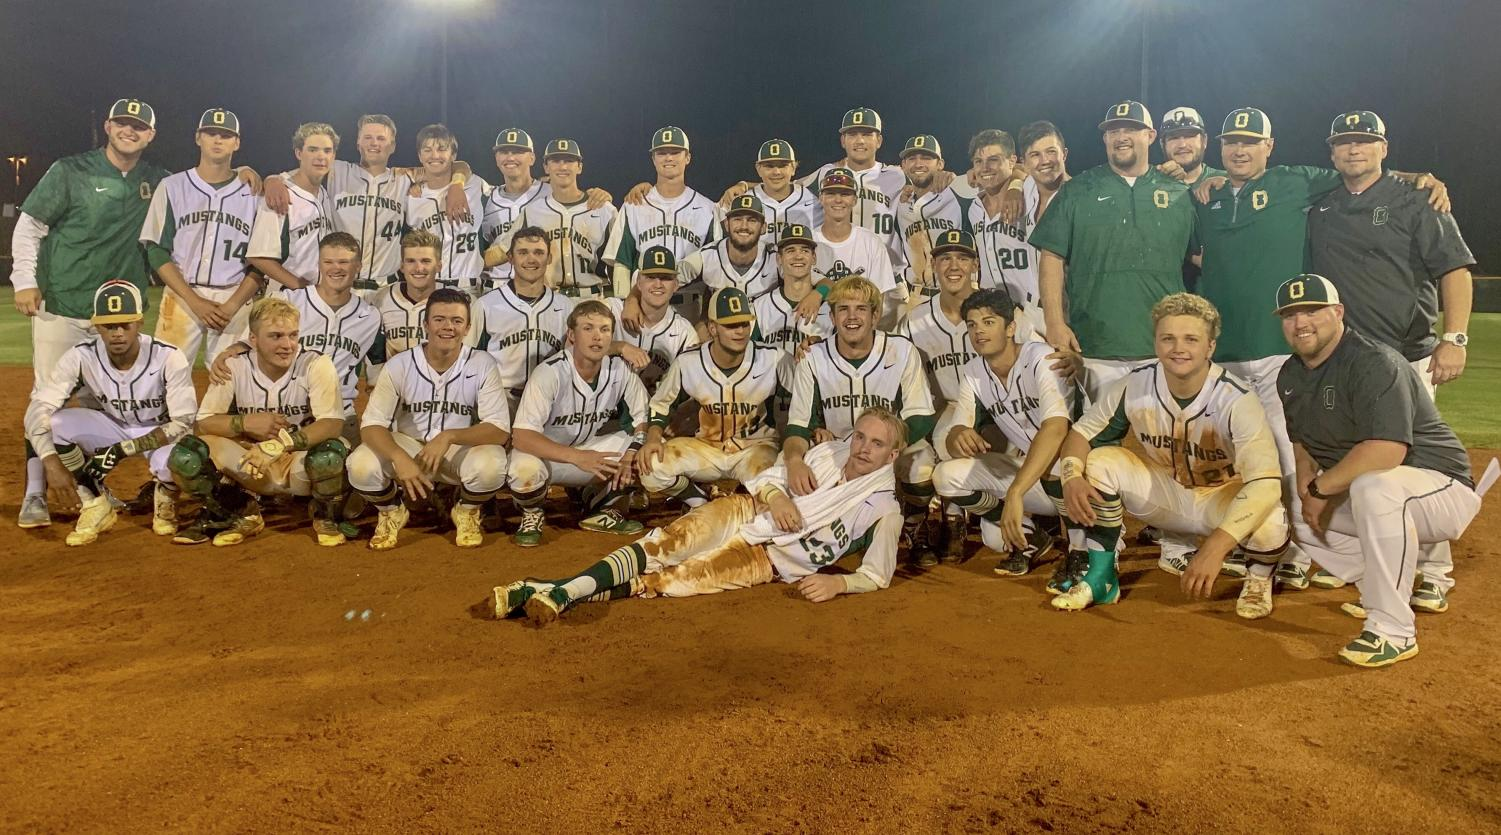 The Mustangs gather for a picture after the win. The players made history advancing to the Final Four State playoff.